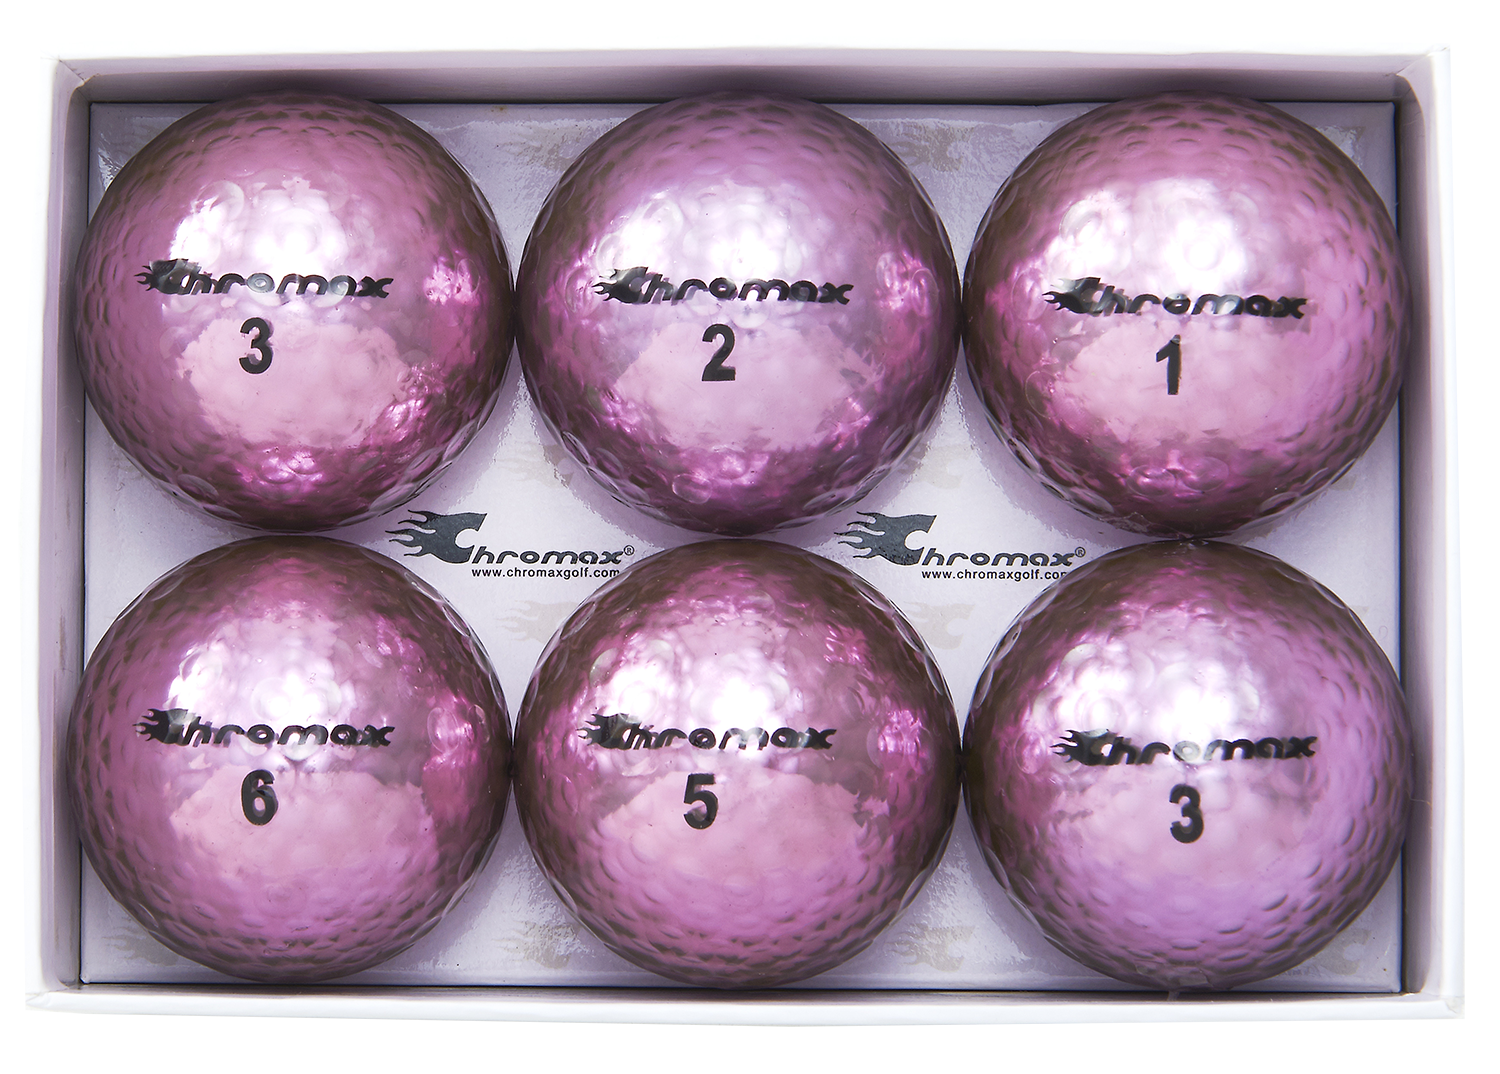 Chromax purple golf ball M5 6-pack open